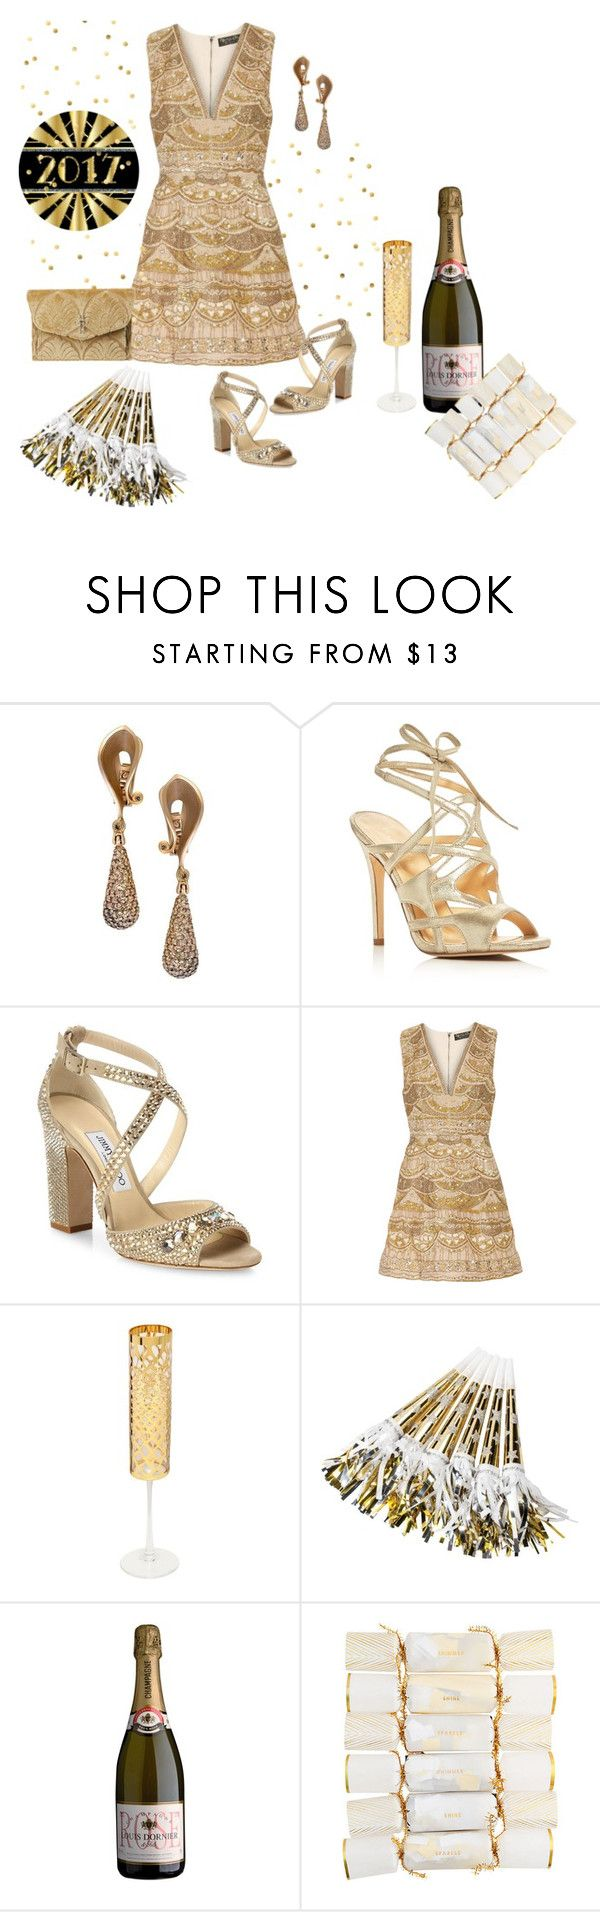 """Untitled #5725"" by lovetodrinktea ❤ liked on Polyvore featuring Alex Soldier, Ivanka Trump, Jimmy Choo, Alice + Olivia, Roberto Cavalli and Hayward"